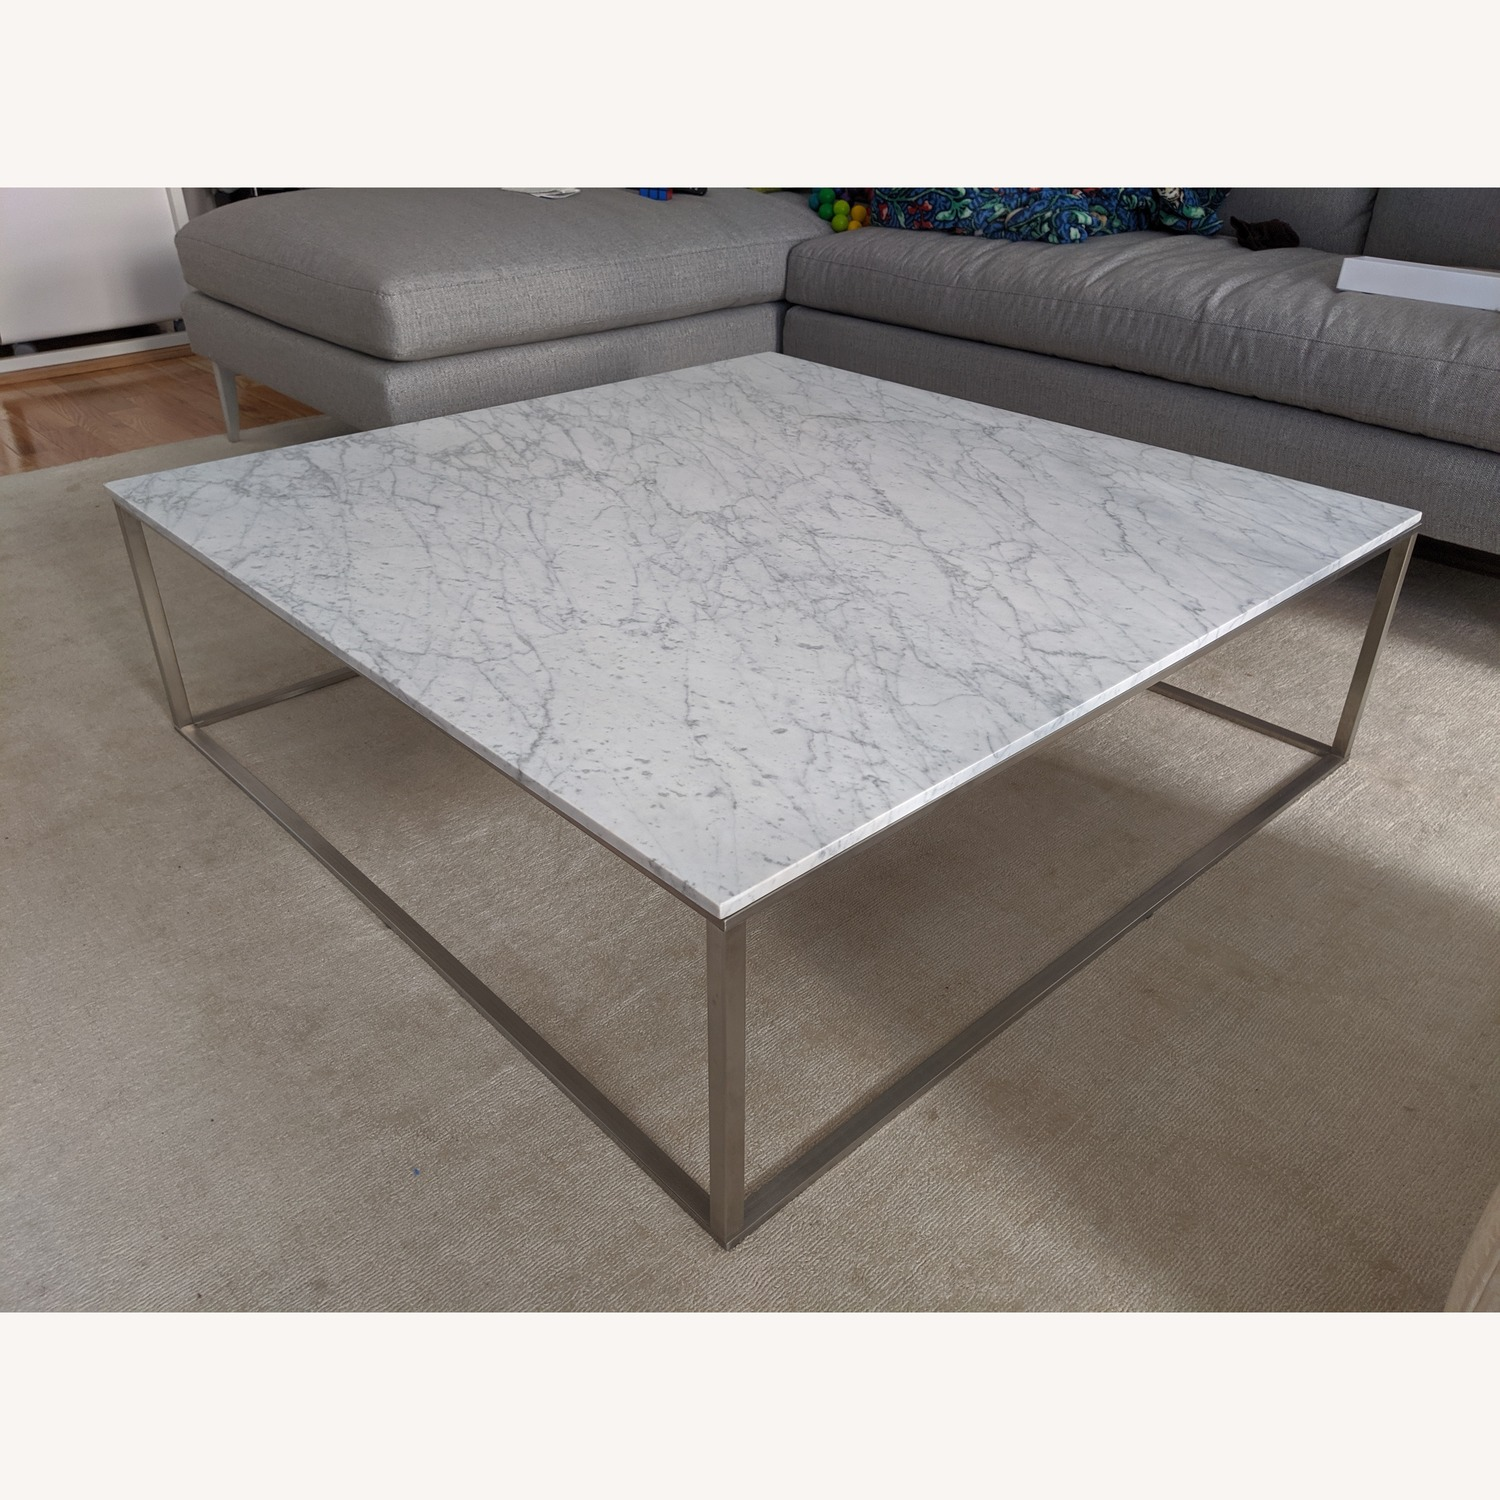 Blu Dot Minimalista Marble Top Coffee Table - image-5